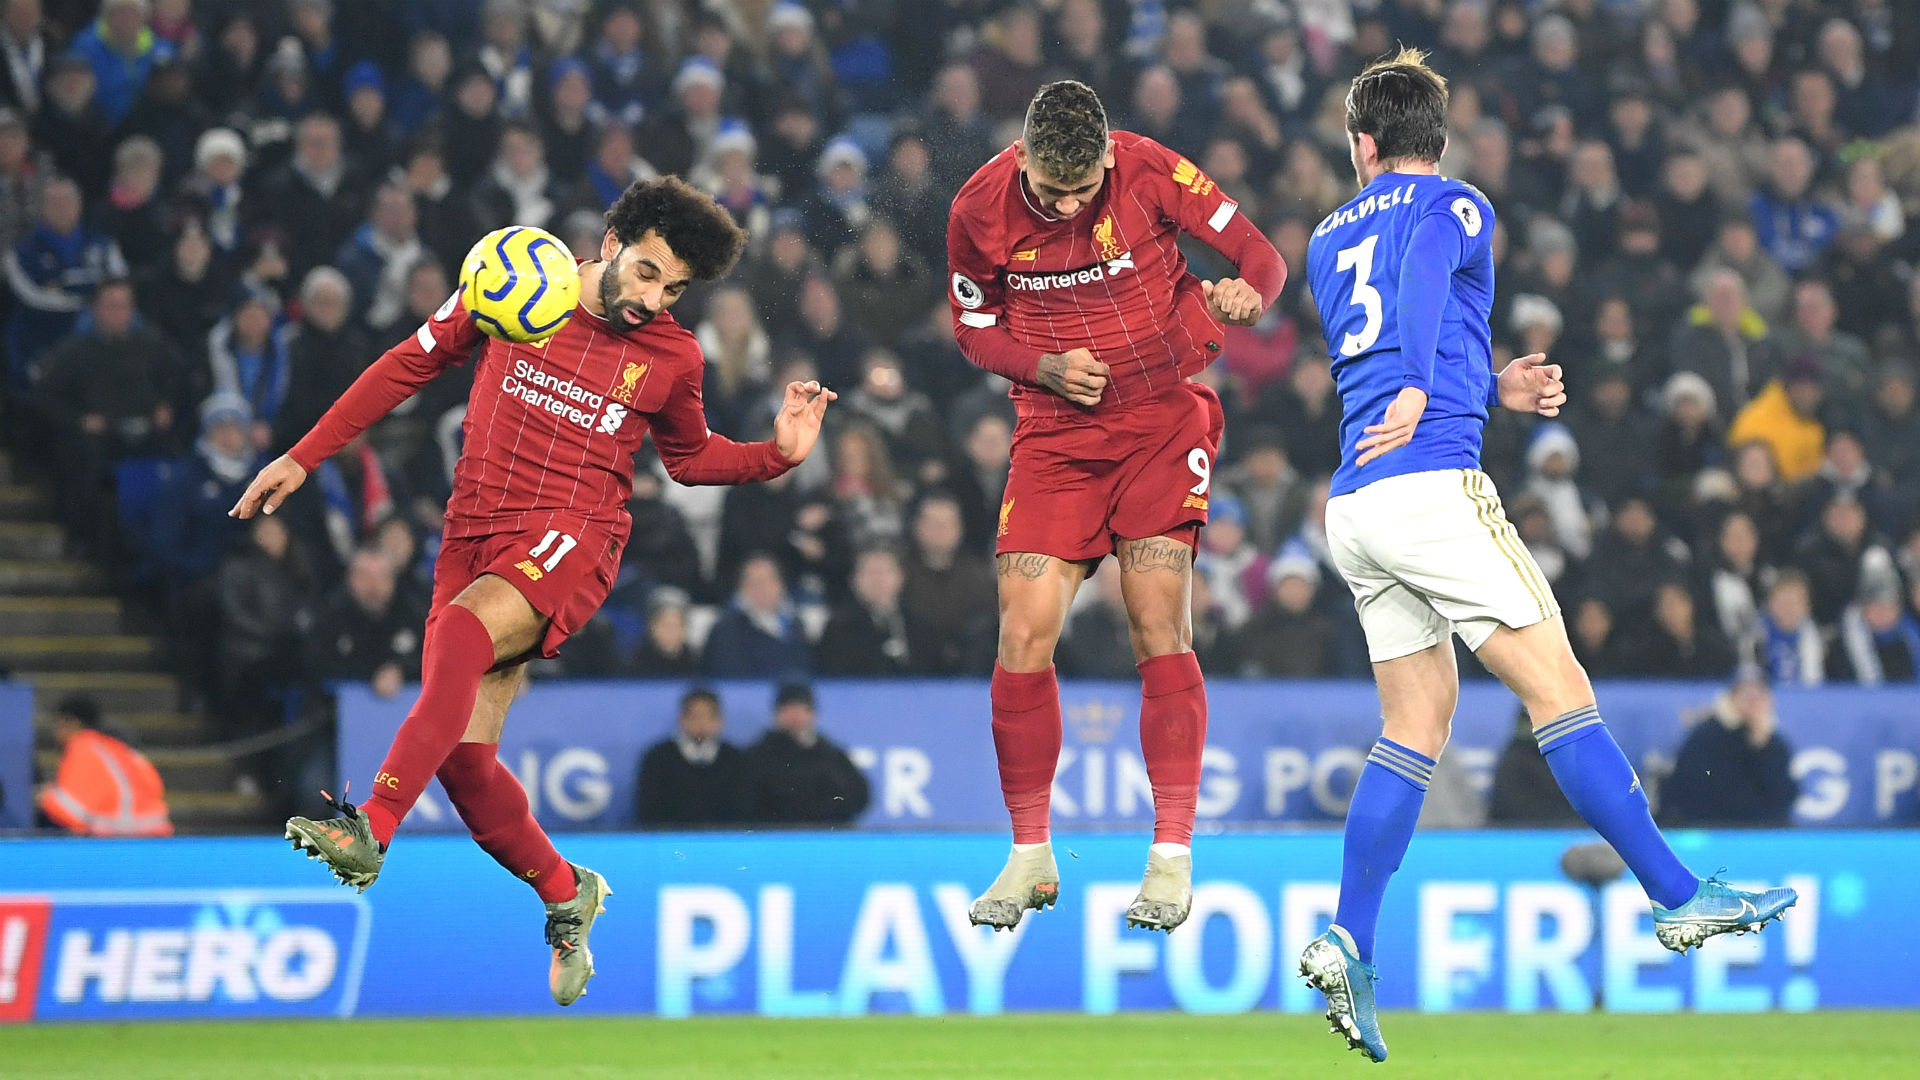 Leicester City 0-4 Liverpool: Firmino at the double as Reds go 13 points clear